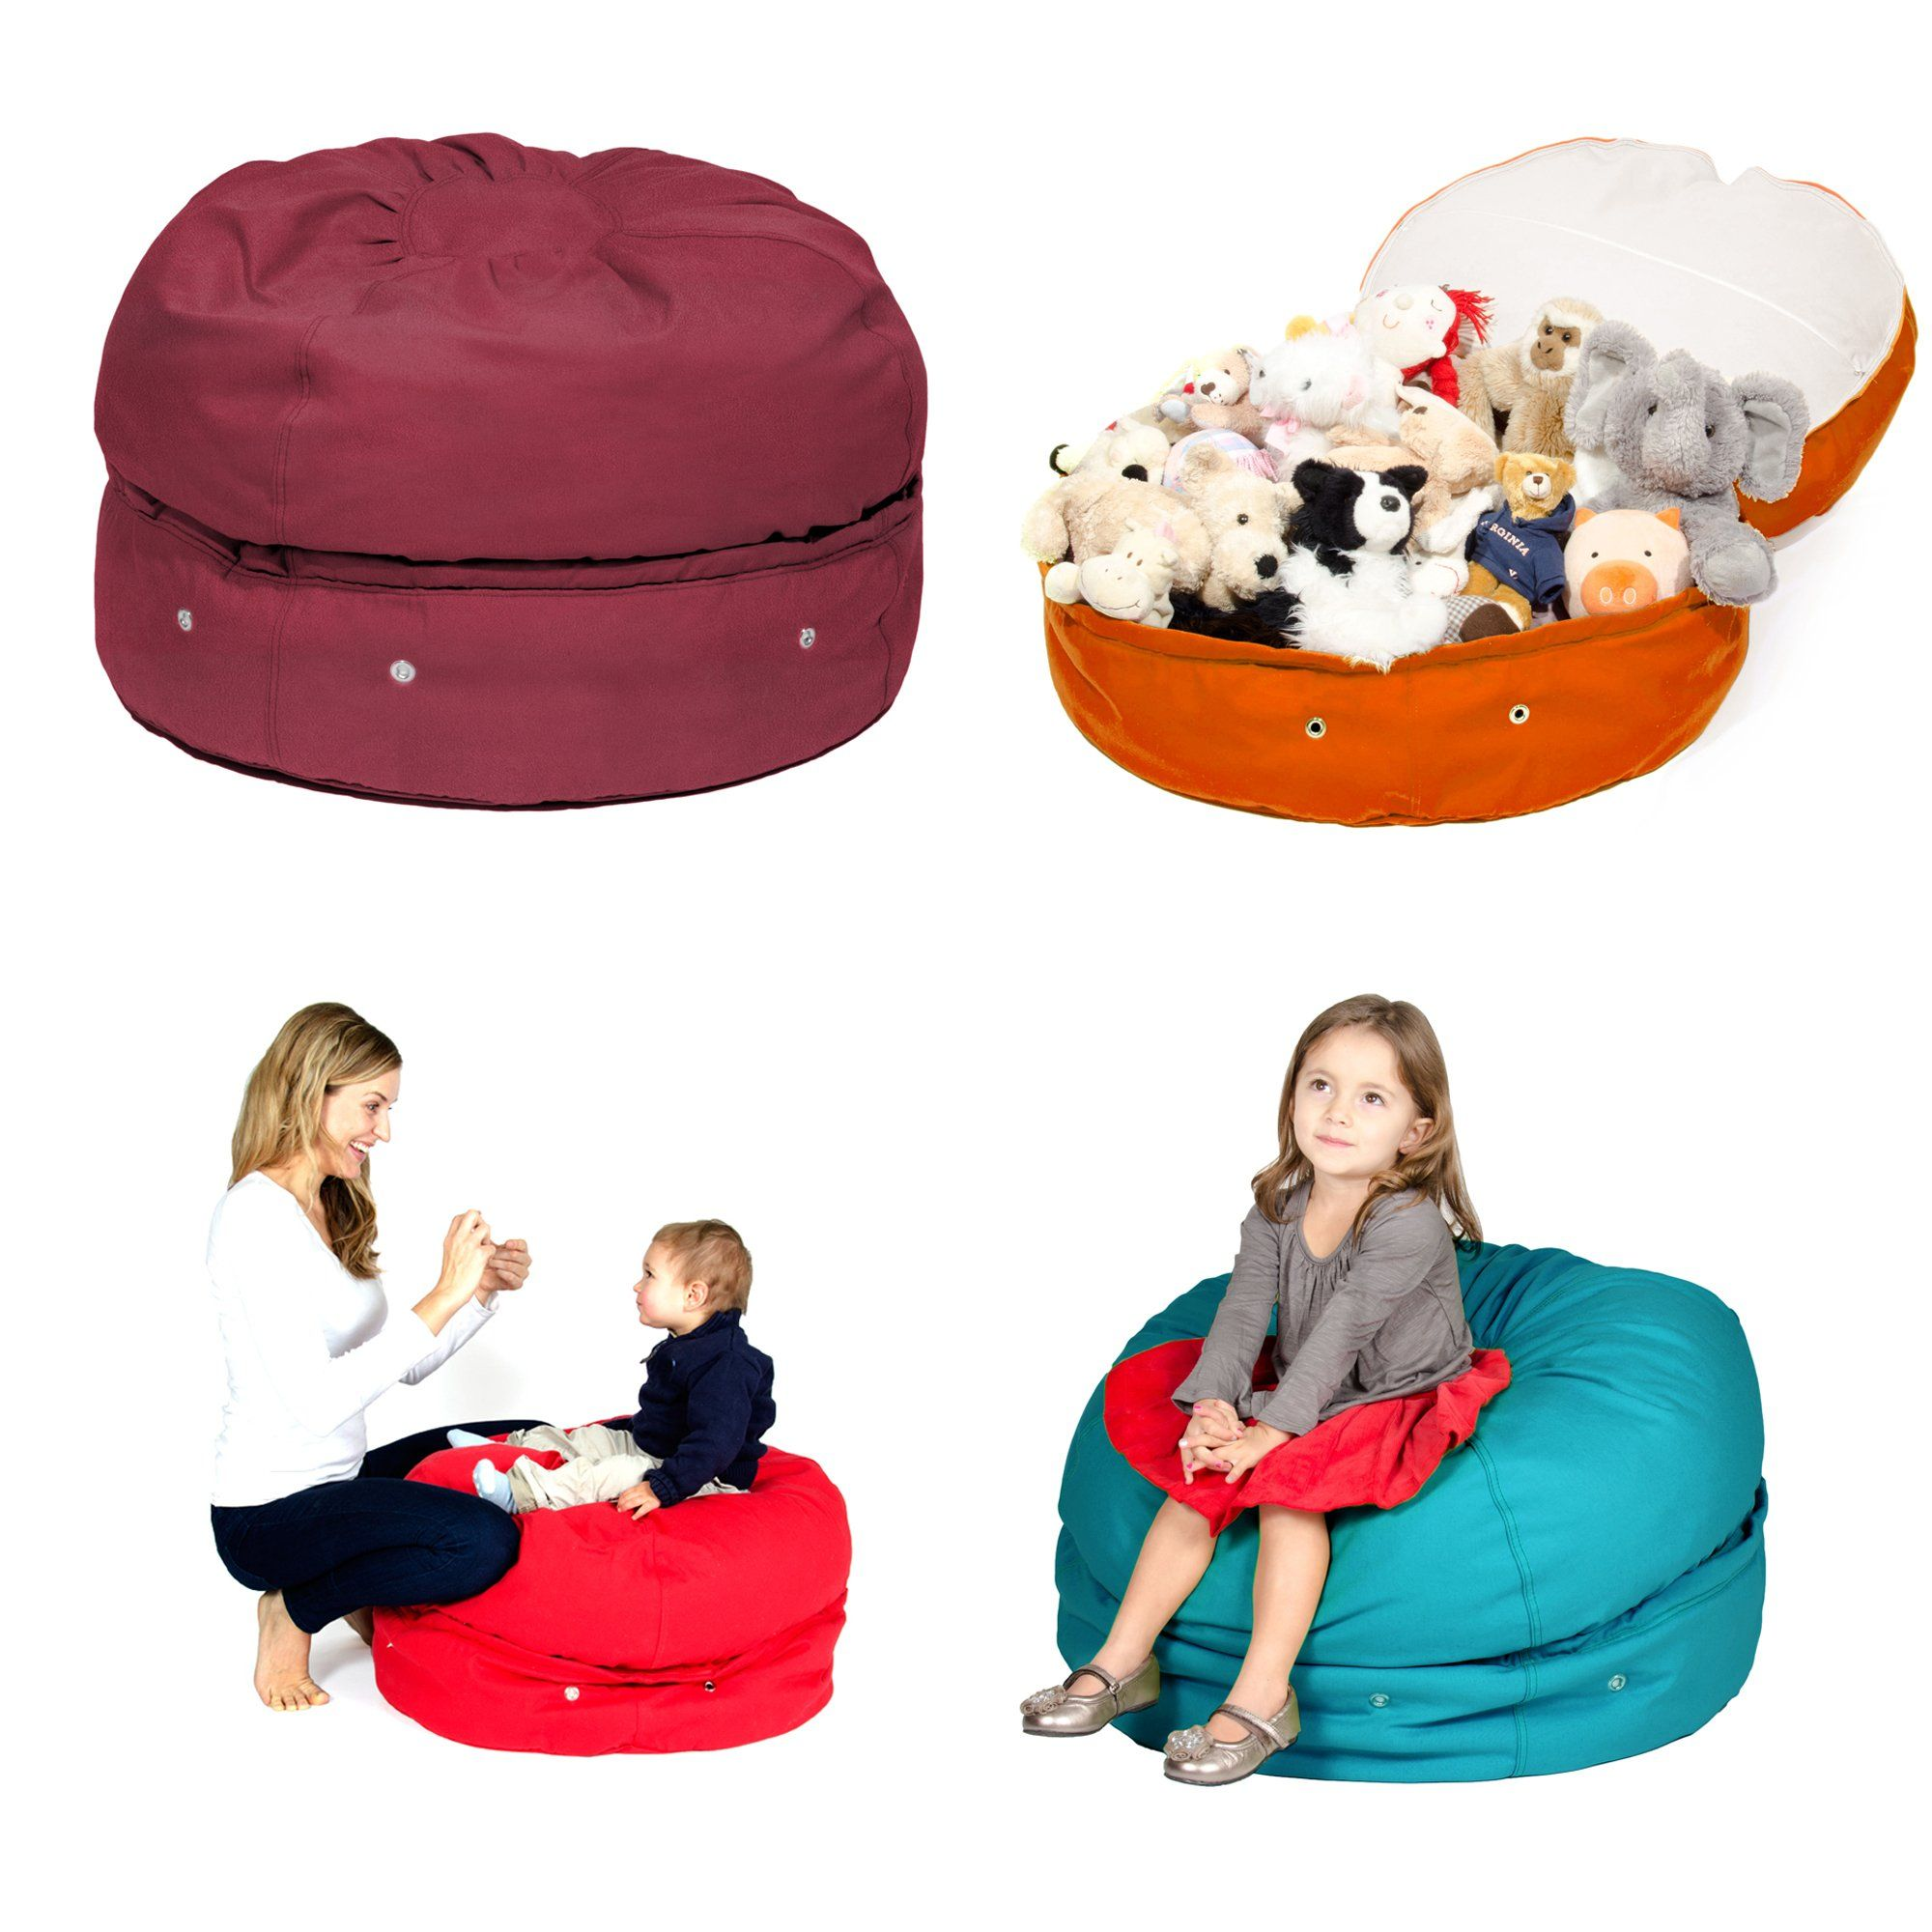 Brilliant Amazon Com Bean Bag Storage Chair By Mimish Made In Usa 13 Ncnpc Chair Design For Home Ncnpcorg